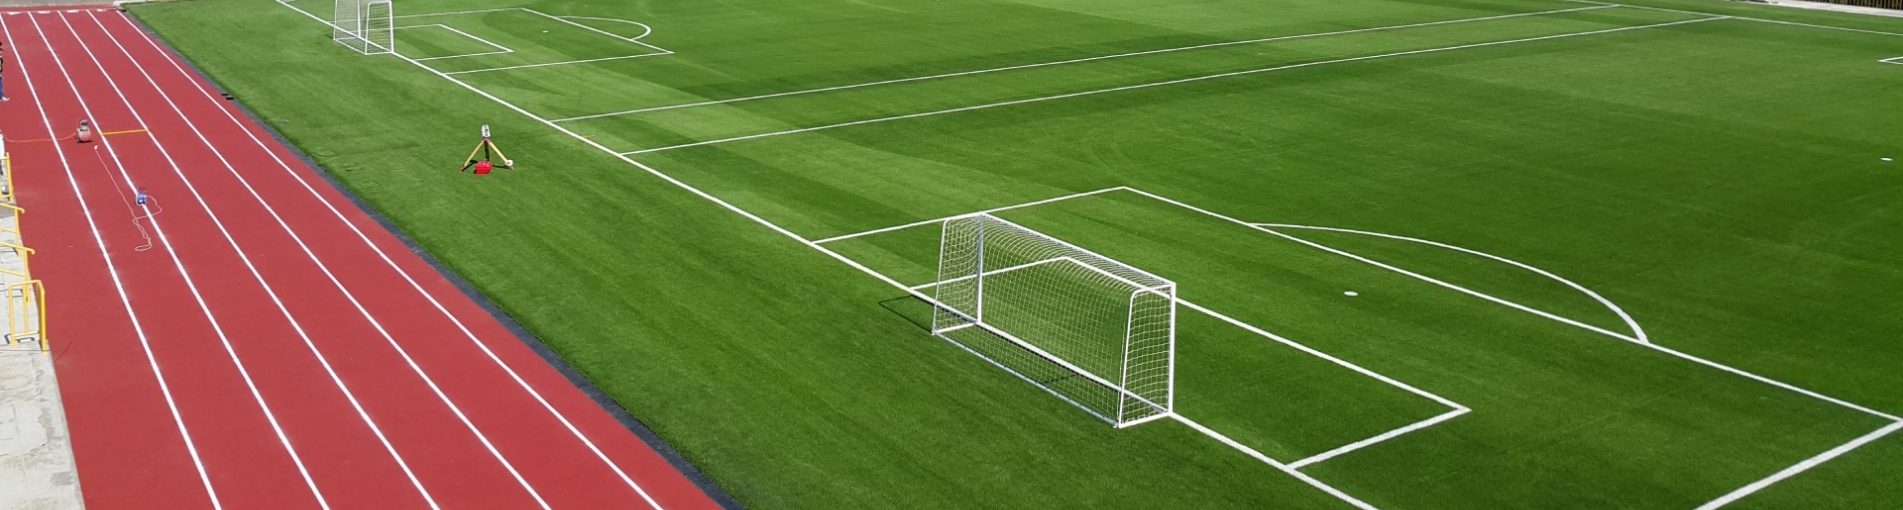 For Indoor Astro Turf Construction Cost